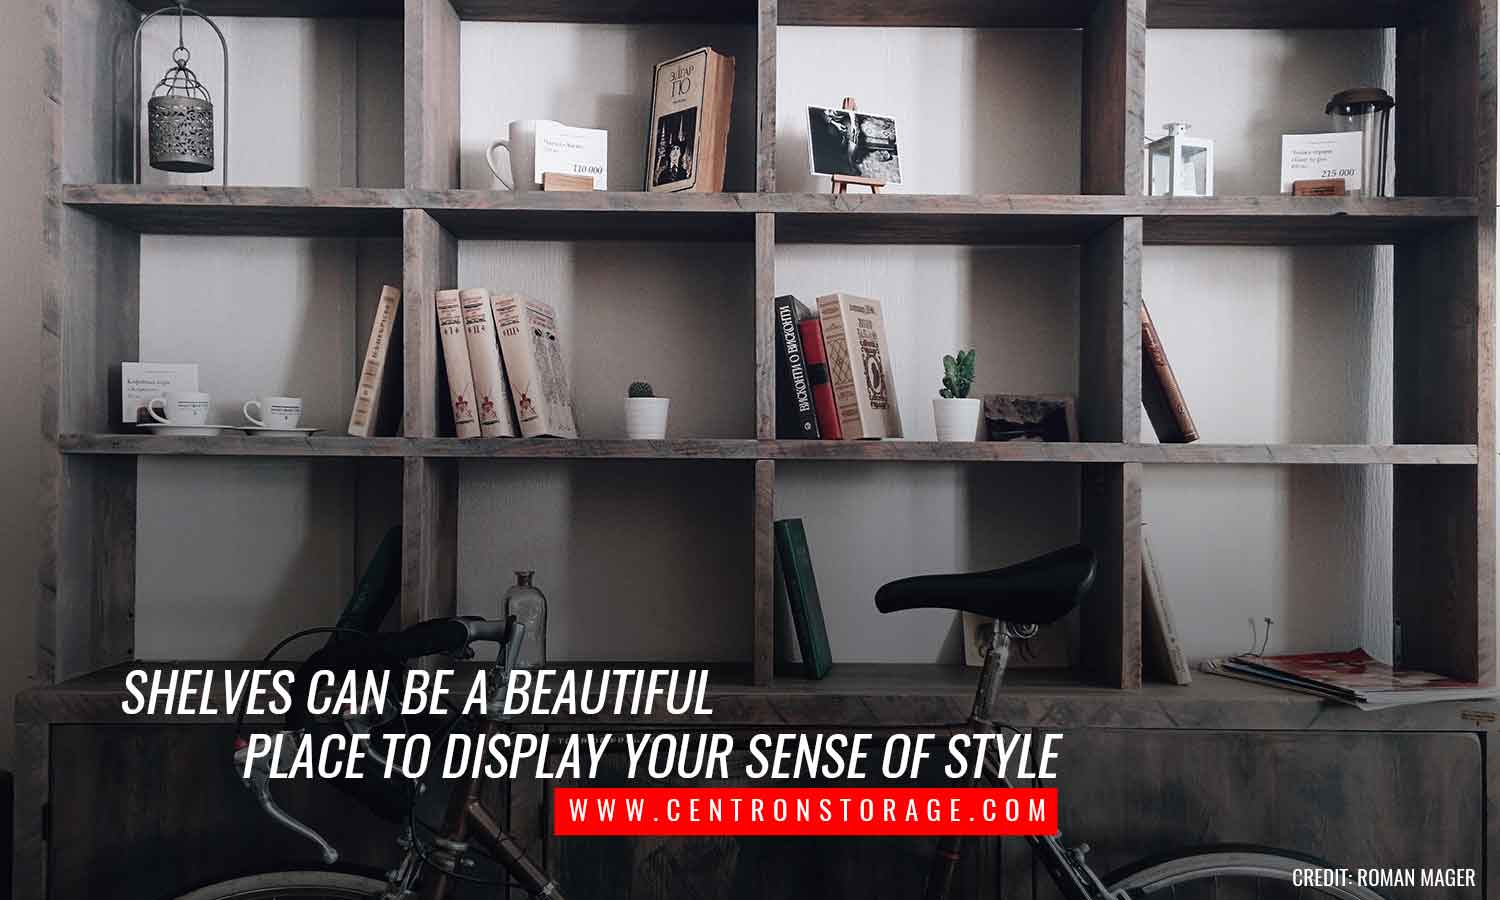 Shelves can be a beautiful place to display your sense of style